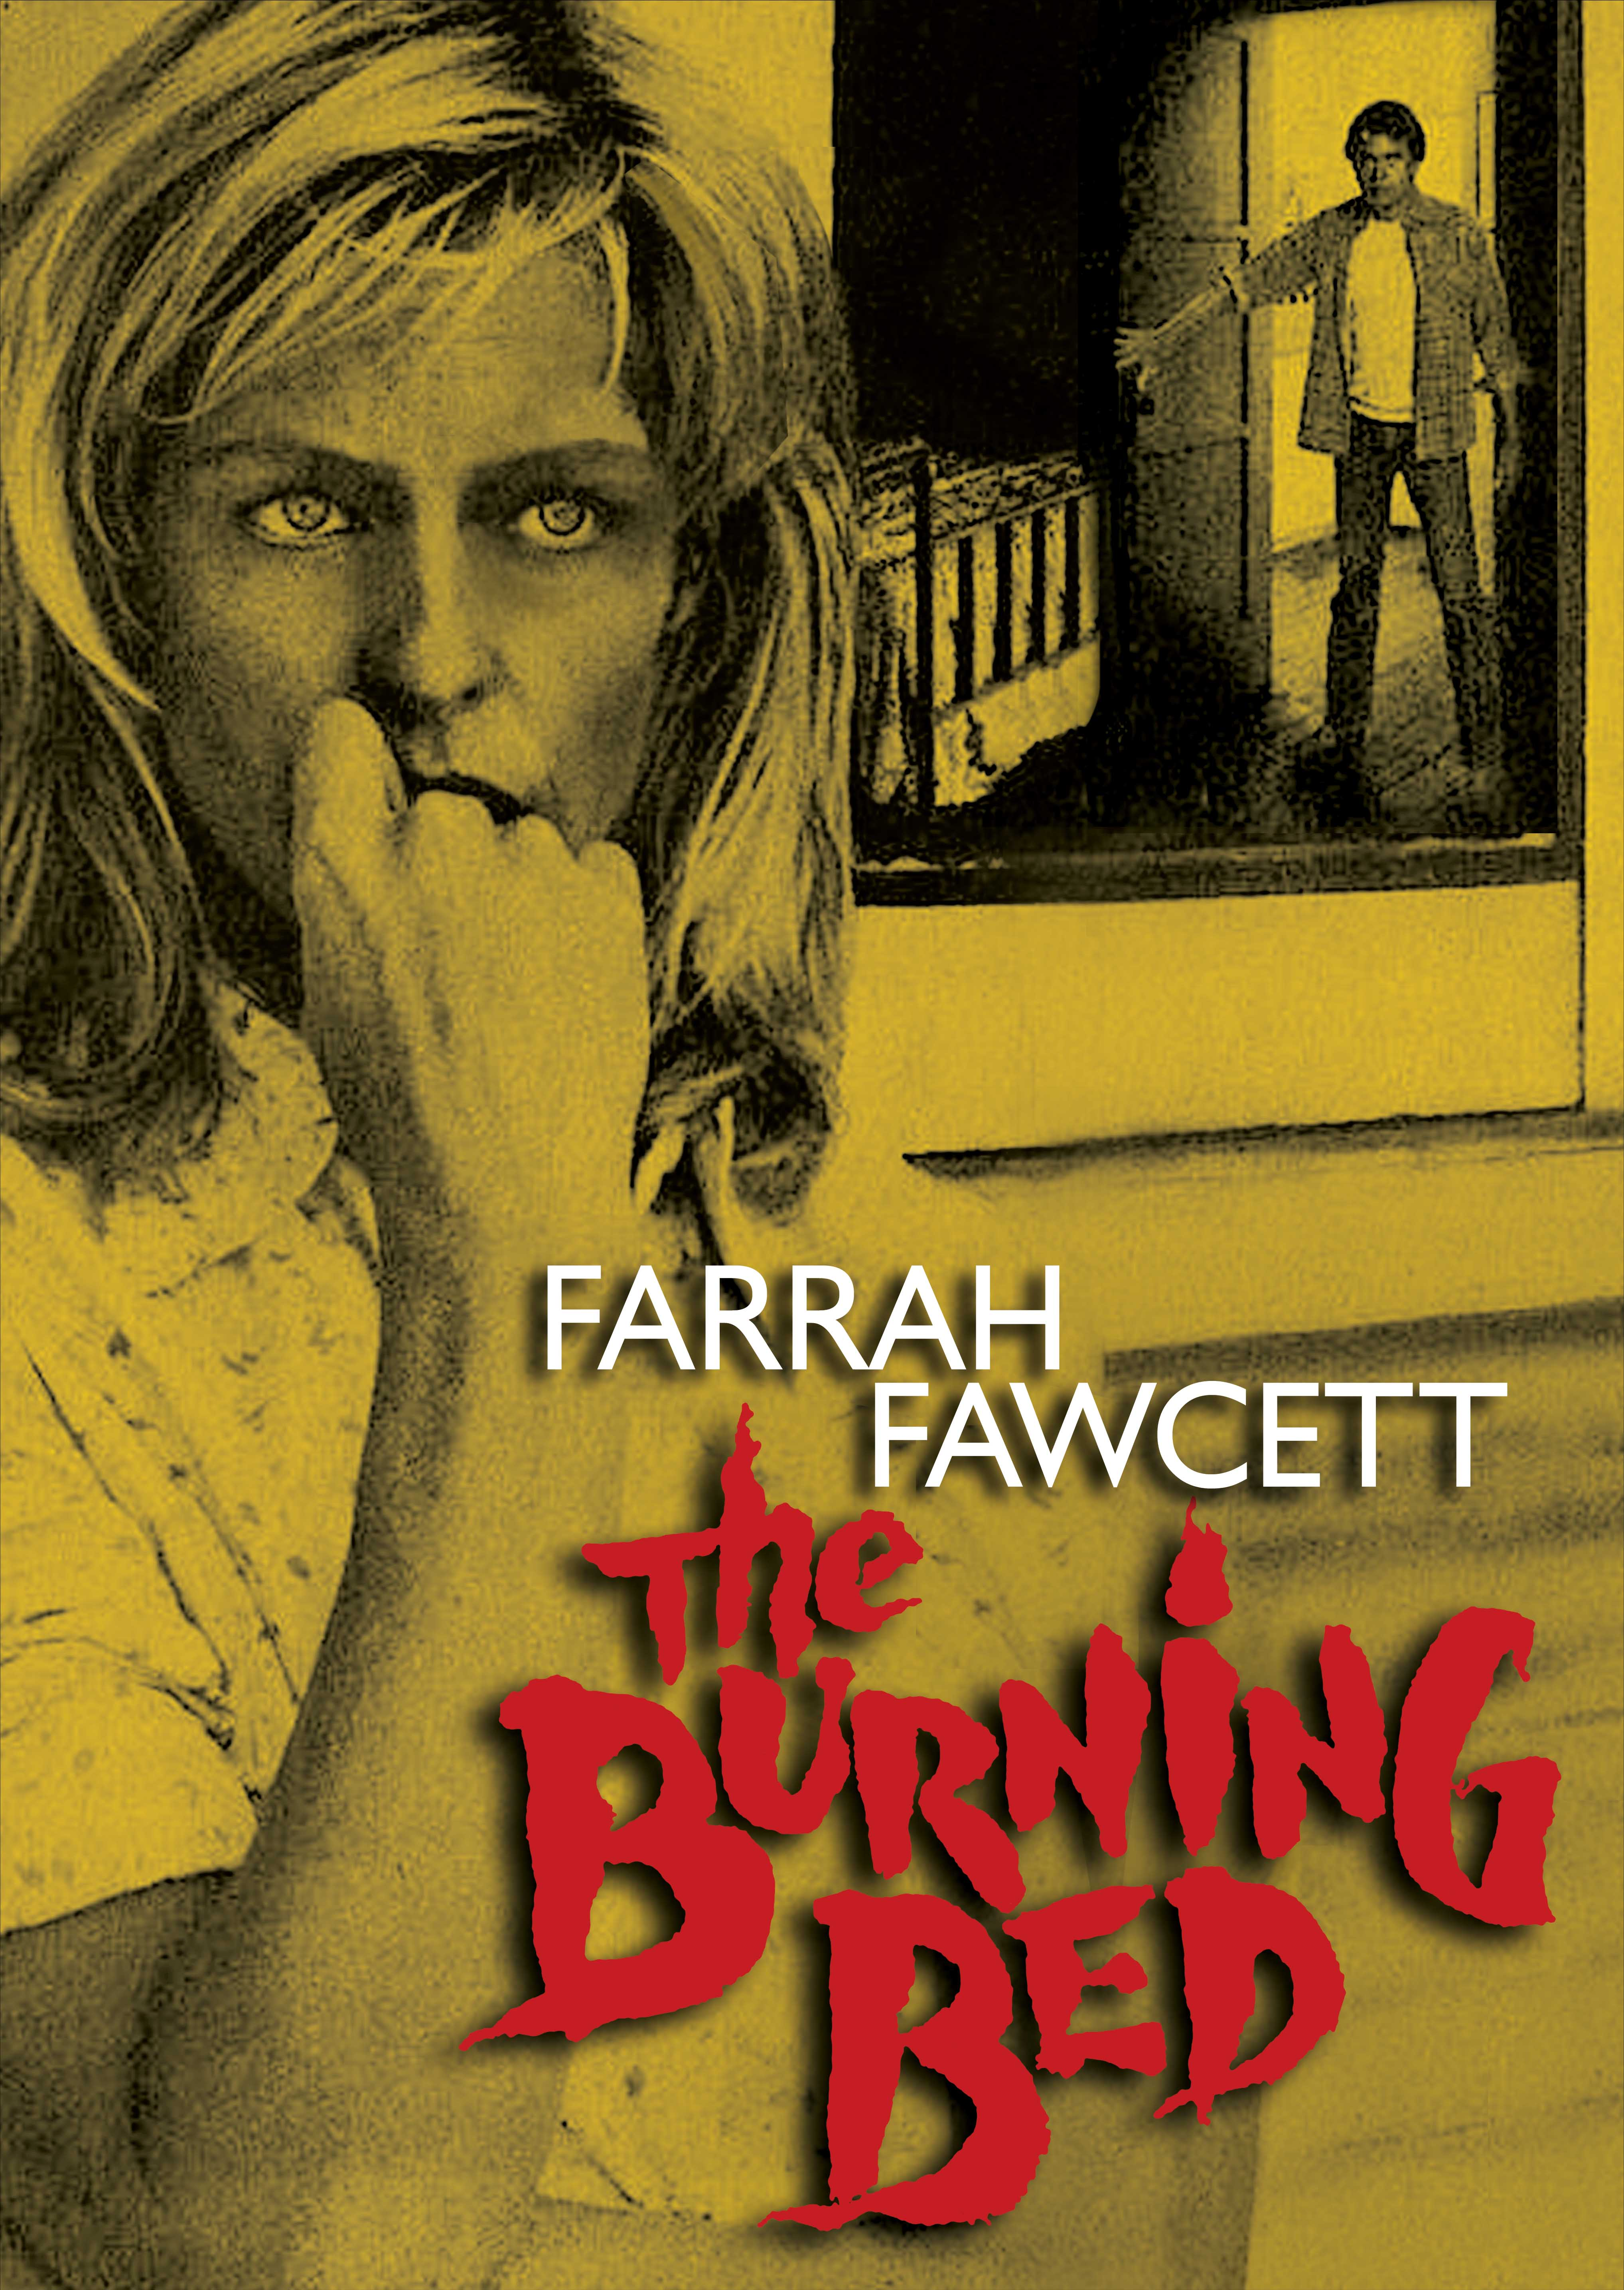 The Burning Bed Dvd Kino Lorber Home Video